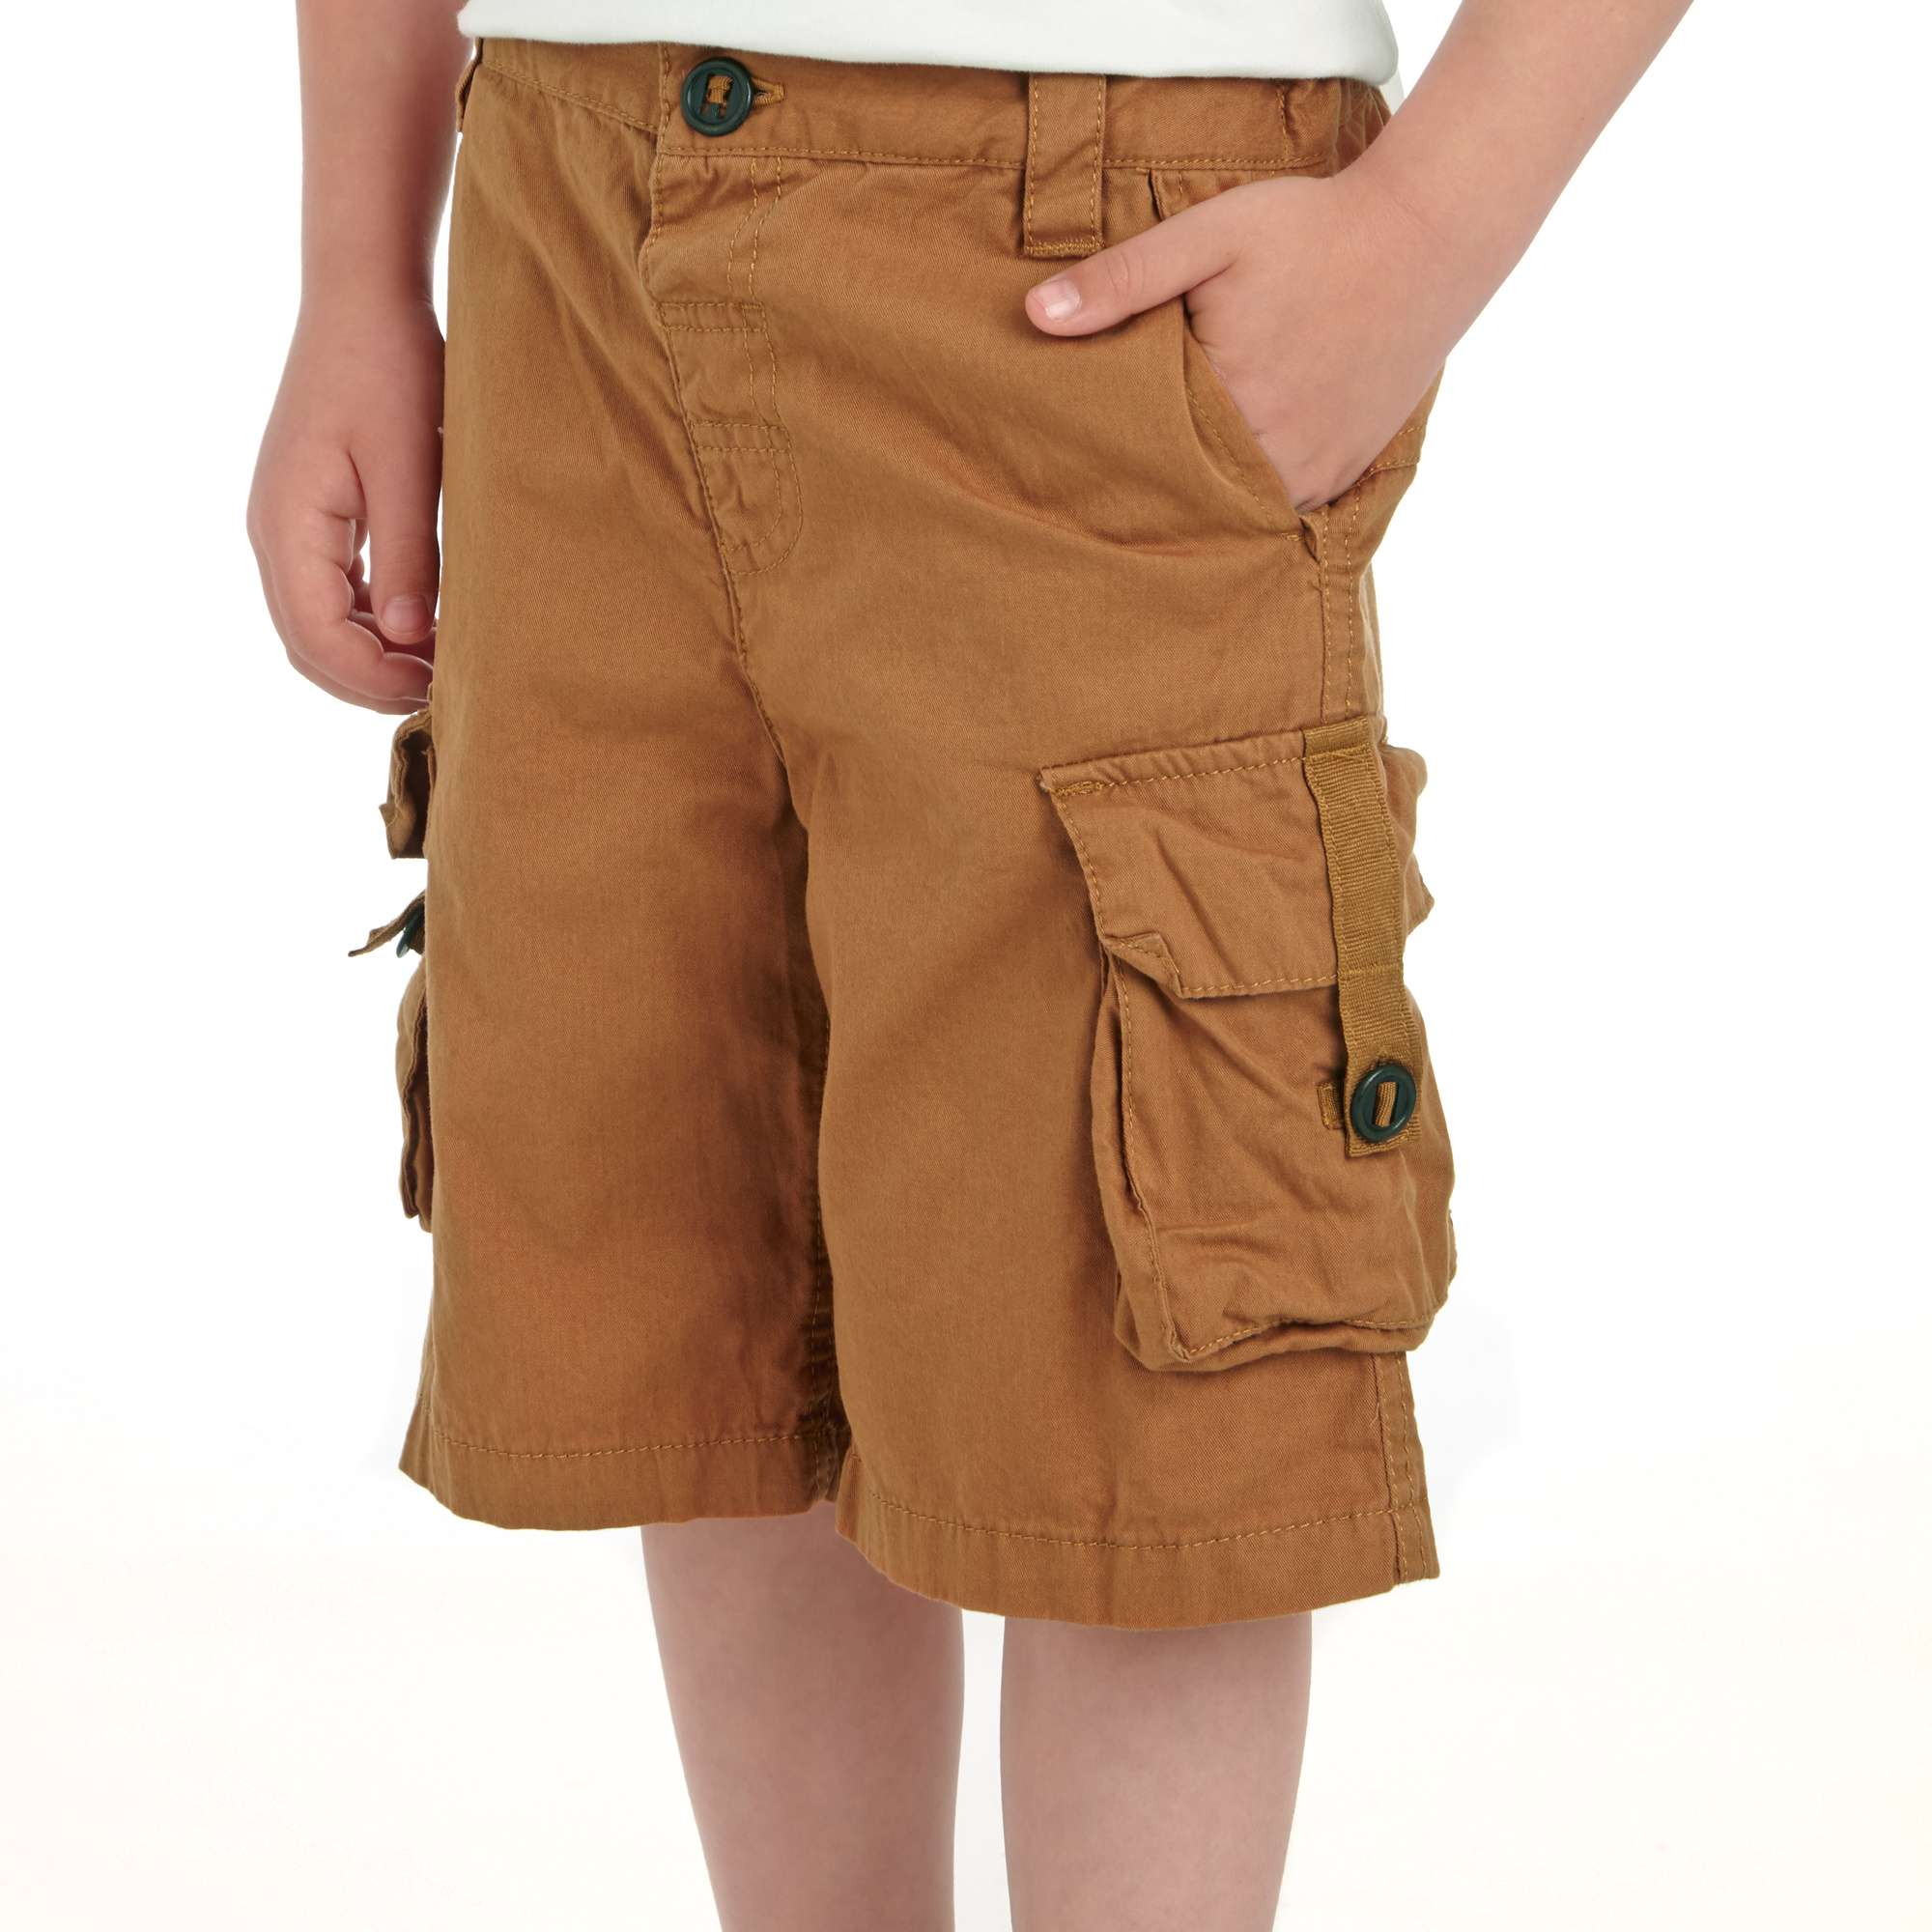 REGATTA Boys' Towson Shorts